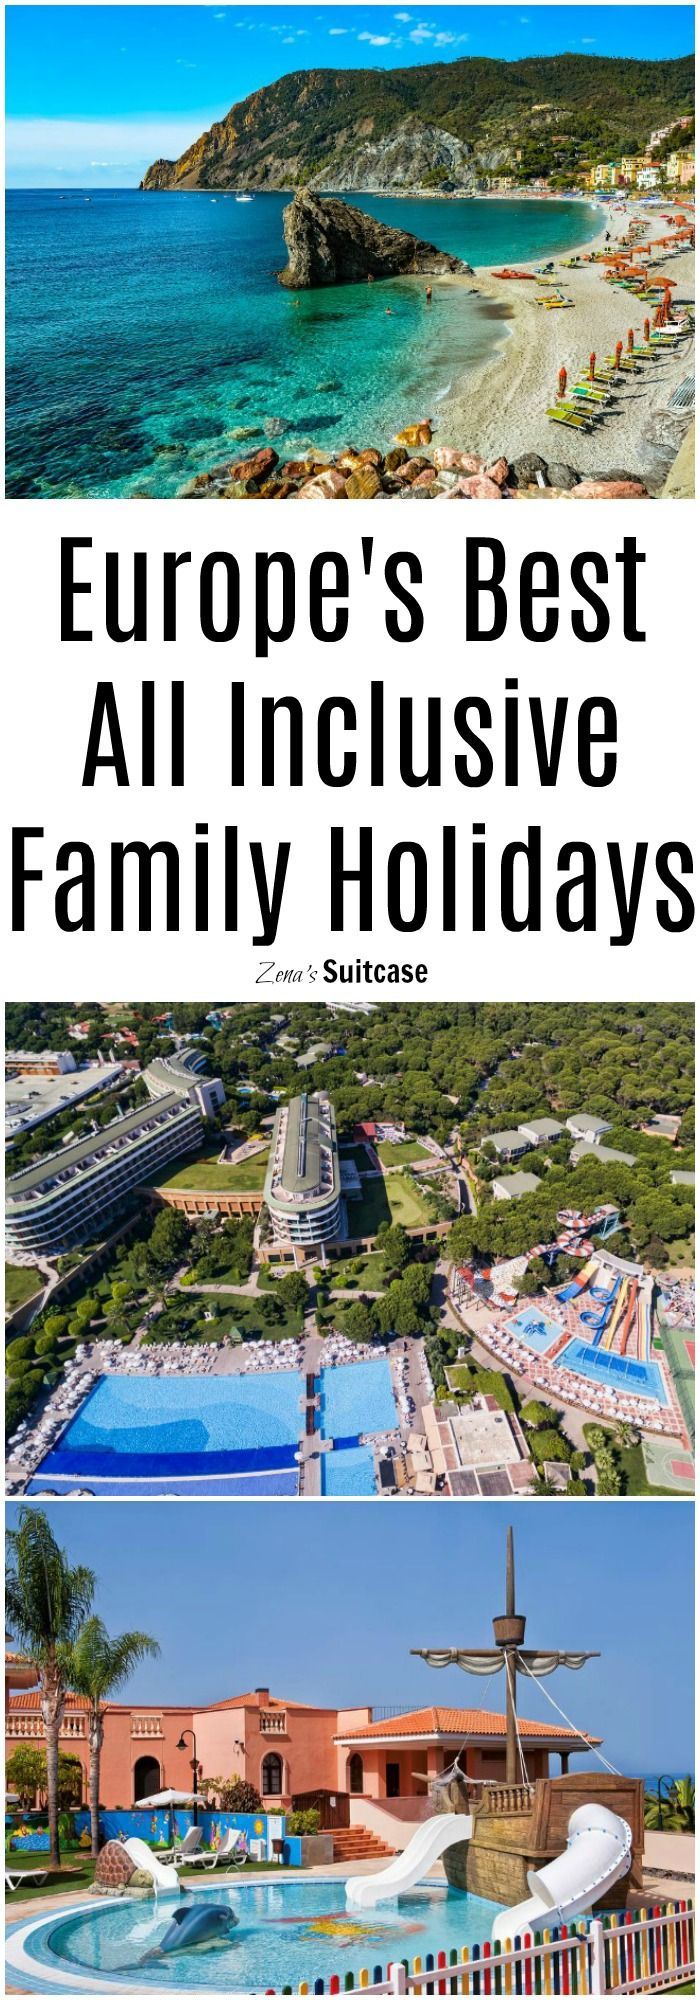 Europe's Best All Inclusive Family Holidays